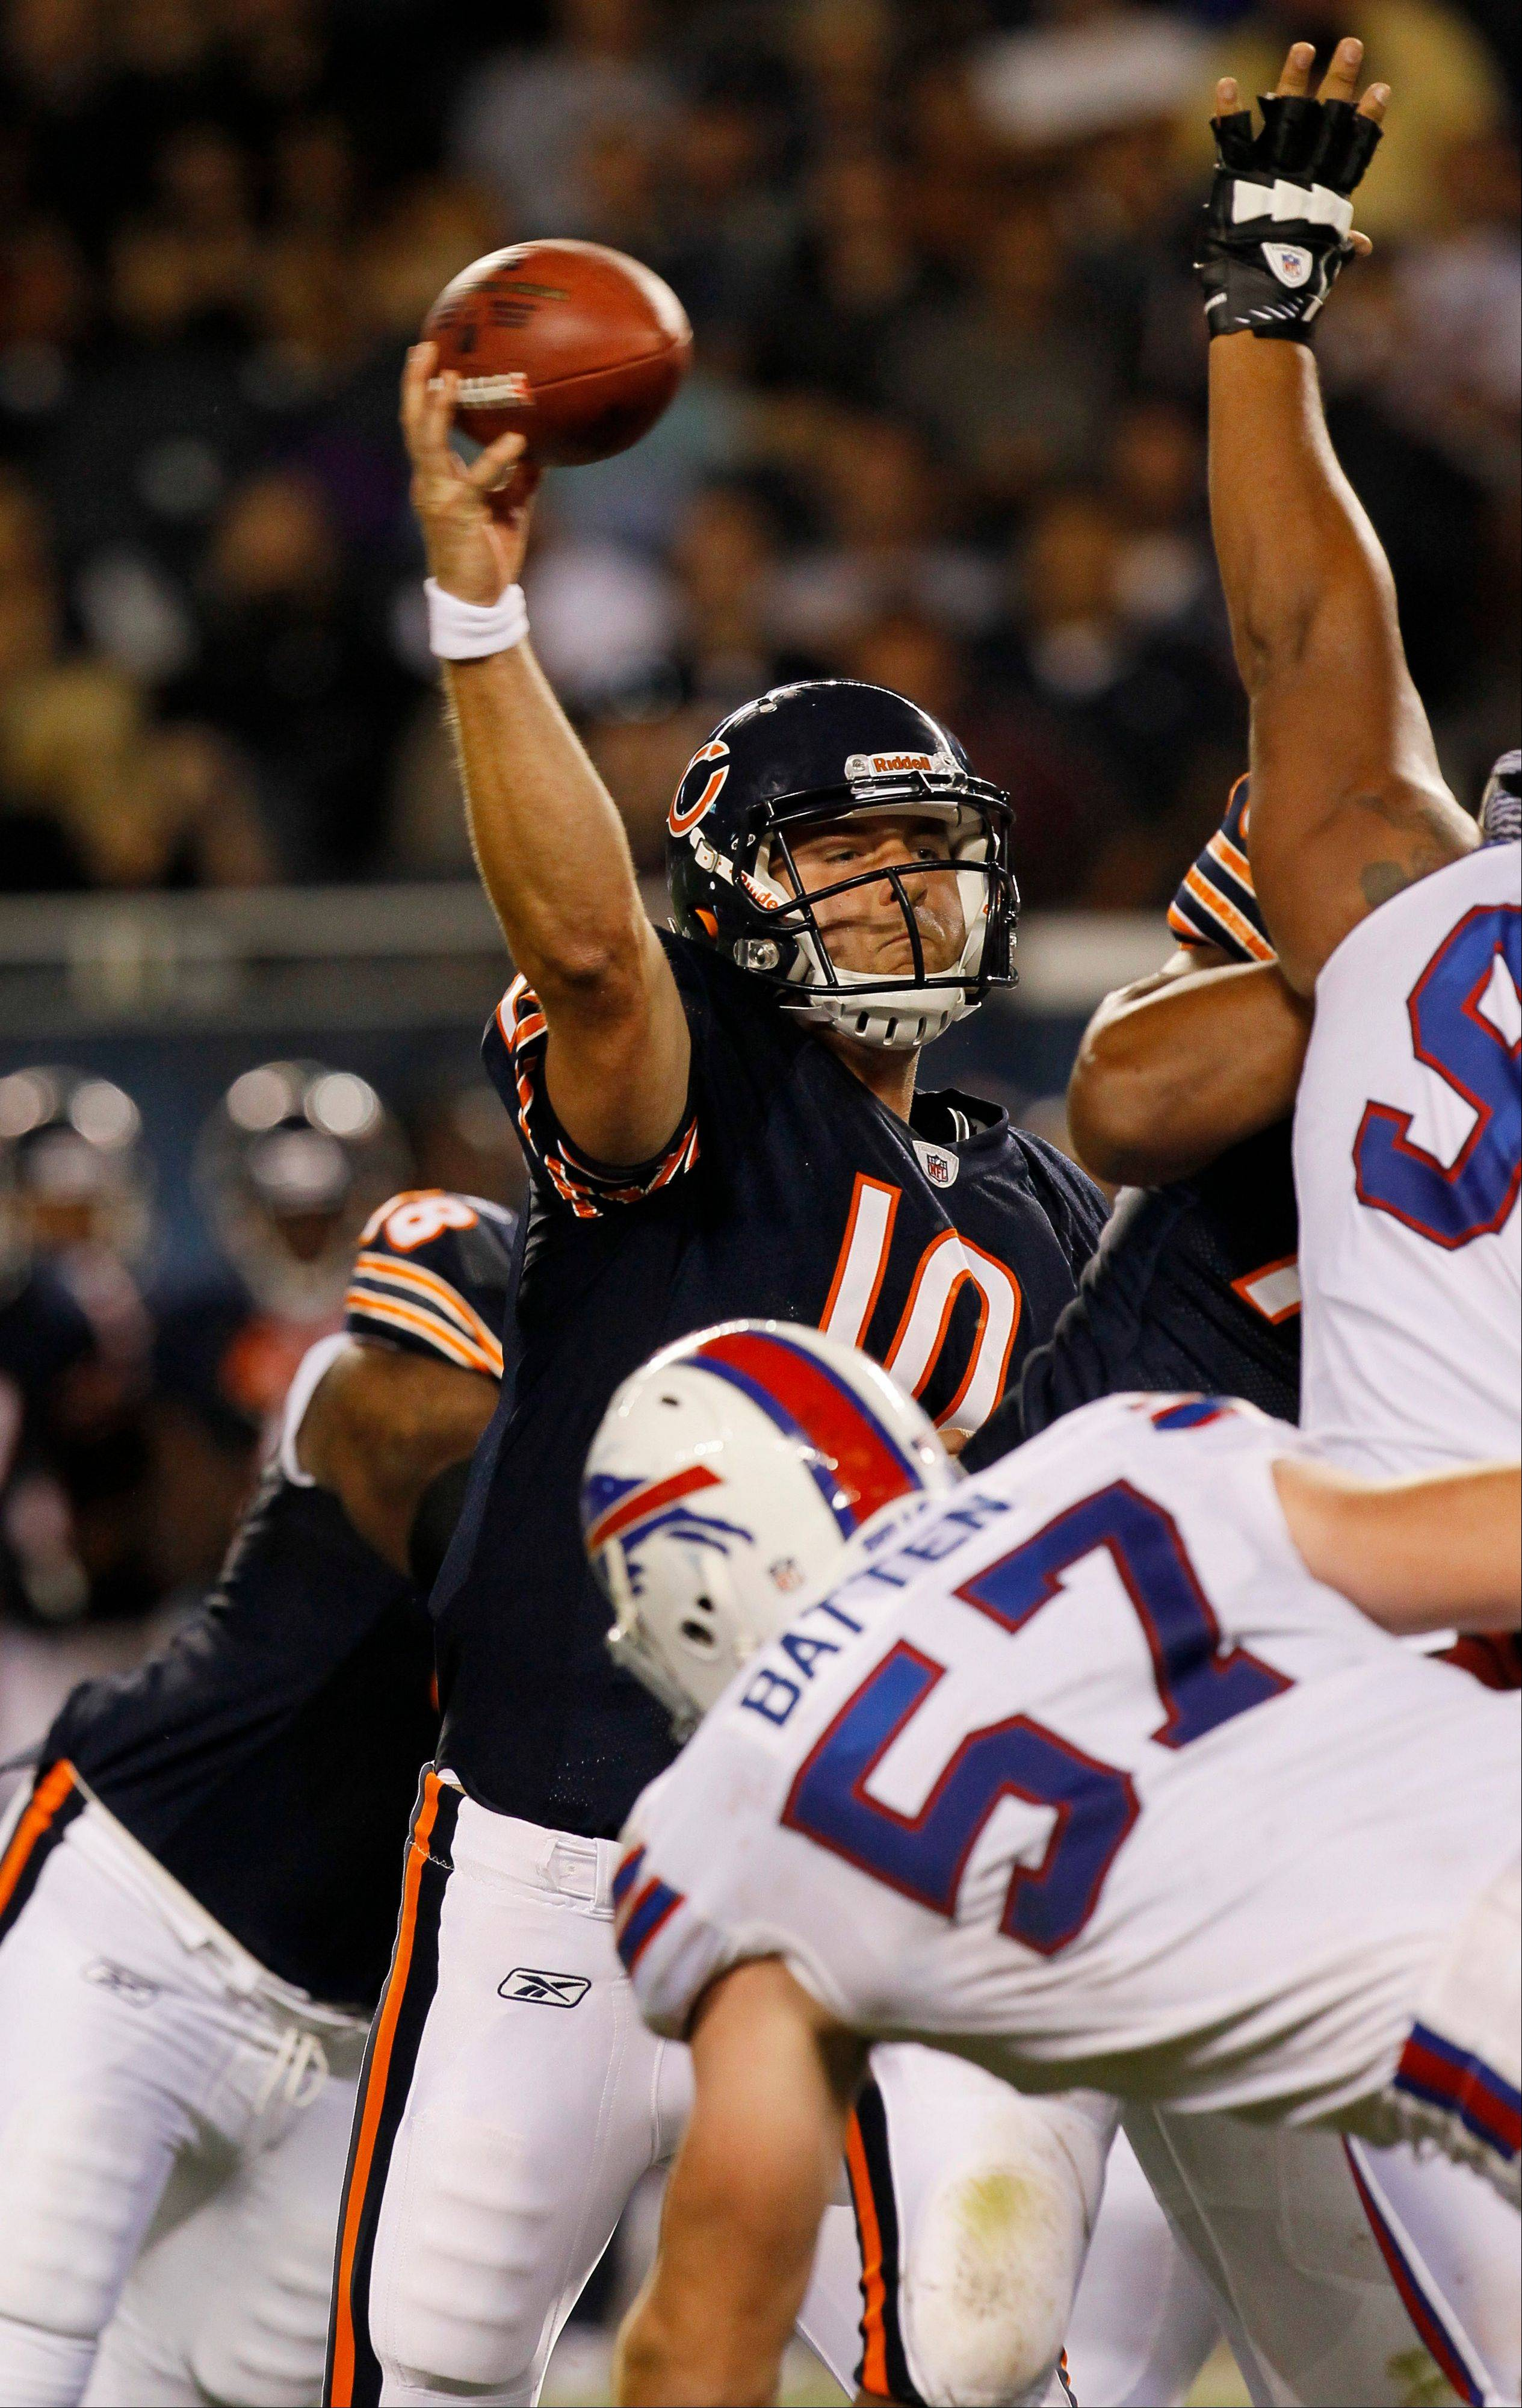 Chicago Bears quarterback Nathan Enderle (10) throws a pass under pressure from Buffalo Bills linebacker Danny Batten (57) in the second half an NFL preseason football game Saturday in Chicago.